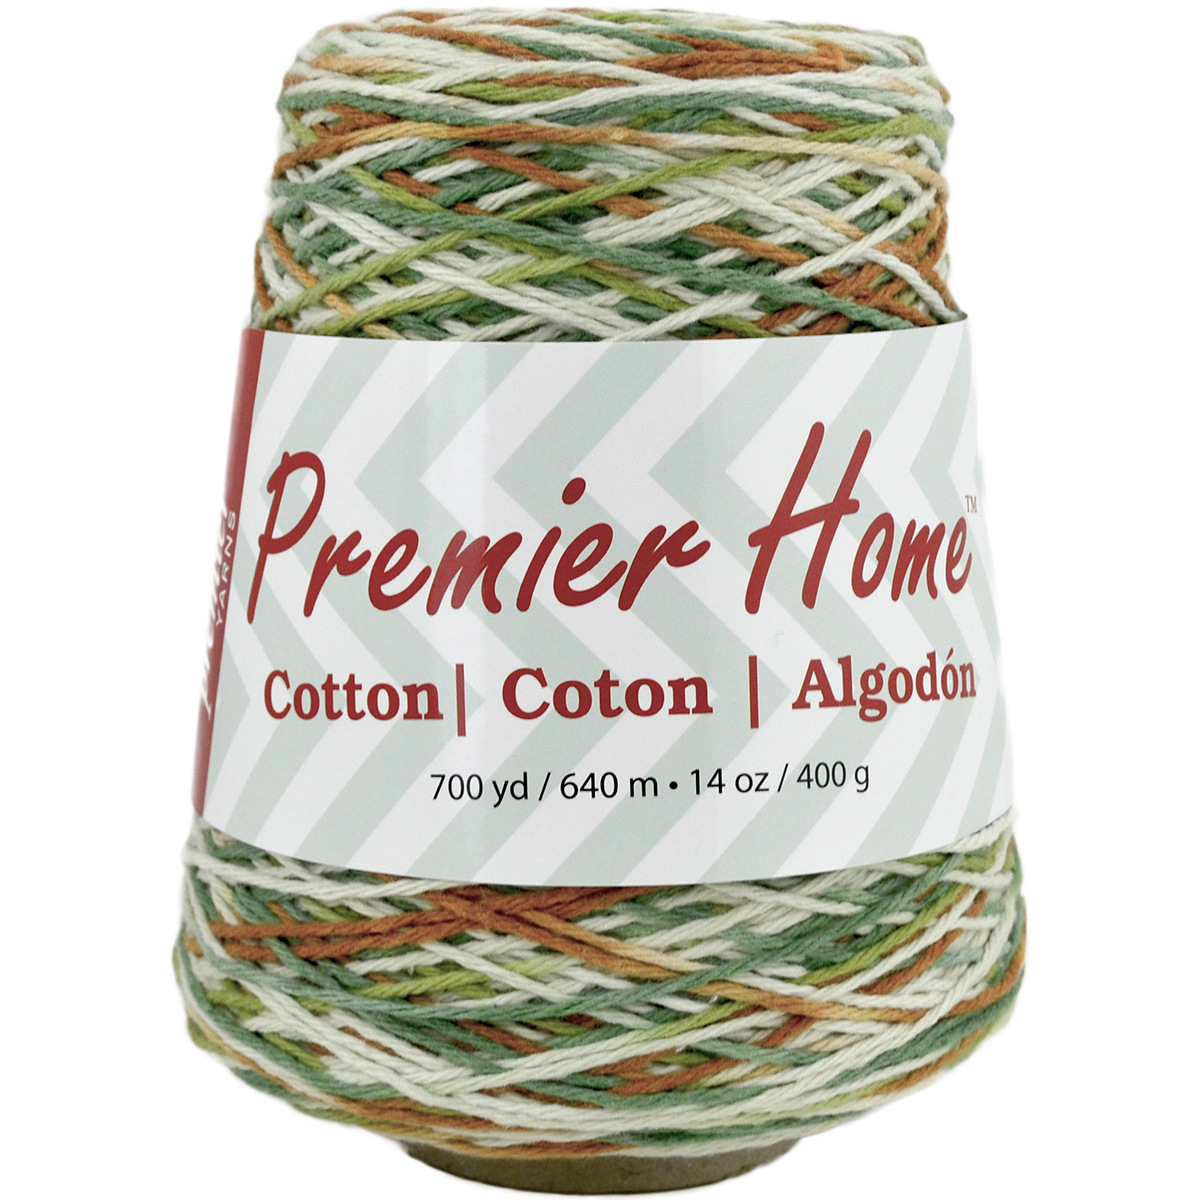 Home Cotton Yarn - Multi Cone-Woodland - image 1 of 1